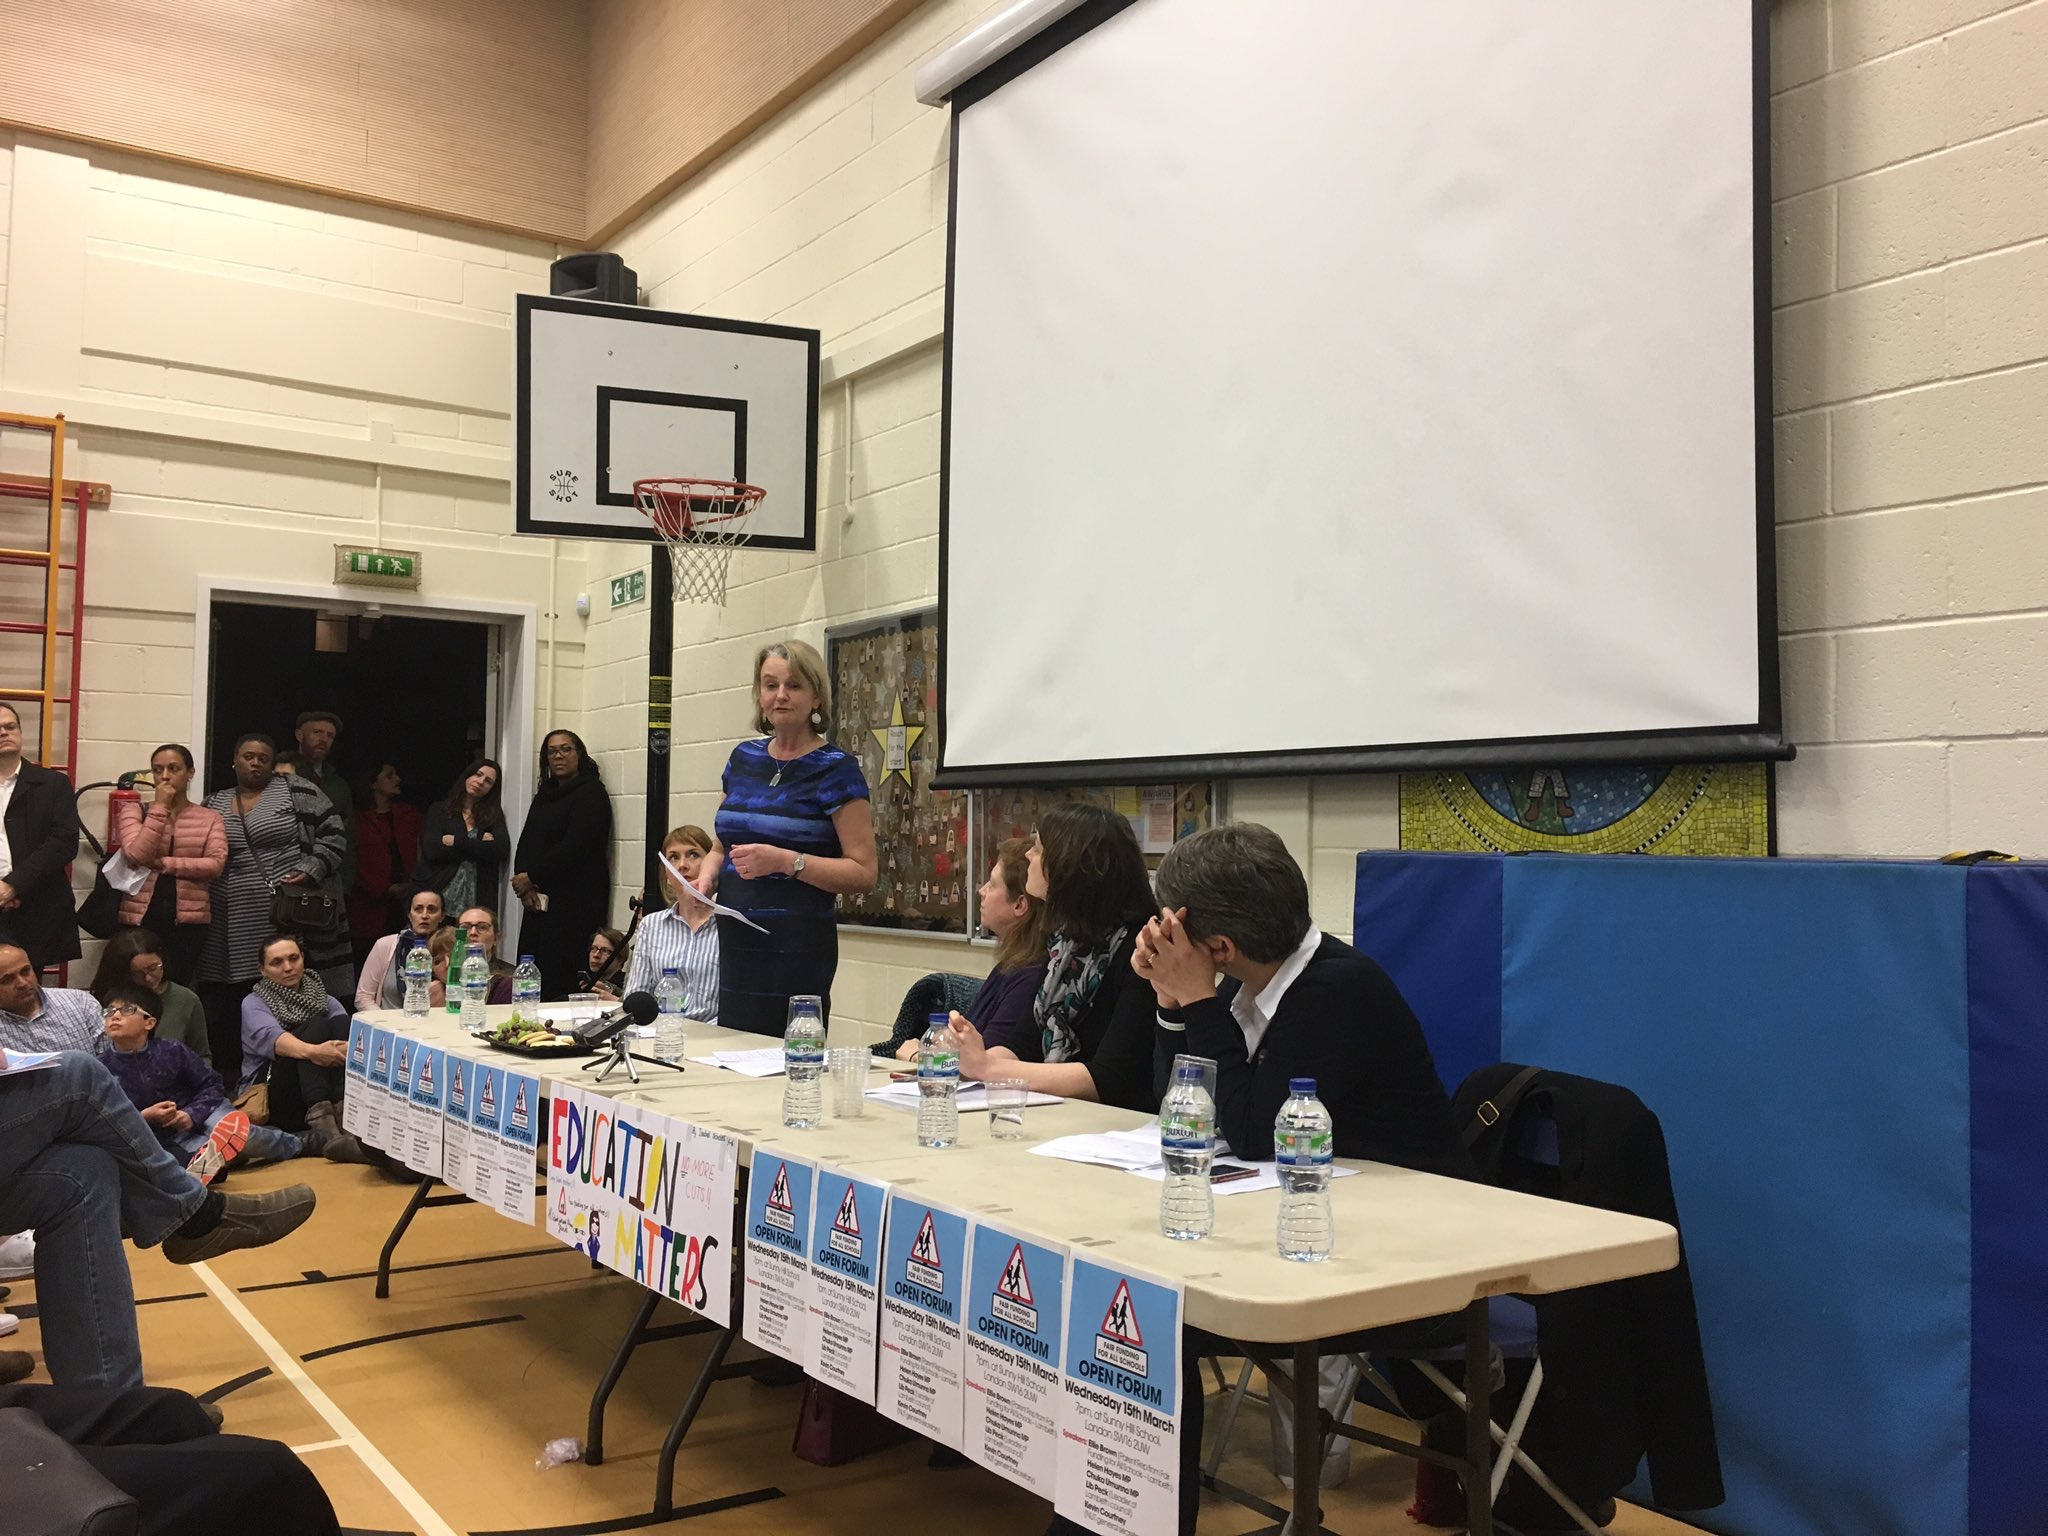 Pic2_-_Leader_of_Lambeth_CouncilCllr_Lib_Peck_speaking_out_alongside_parents_and_teachers_against_unfair_cuts_to_Lambeths_schools.jpg